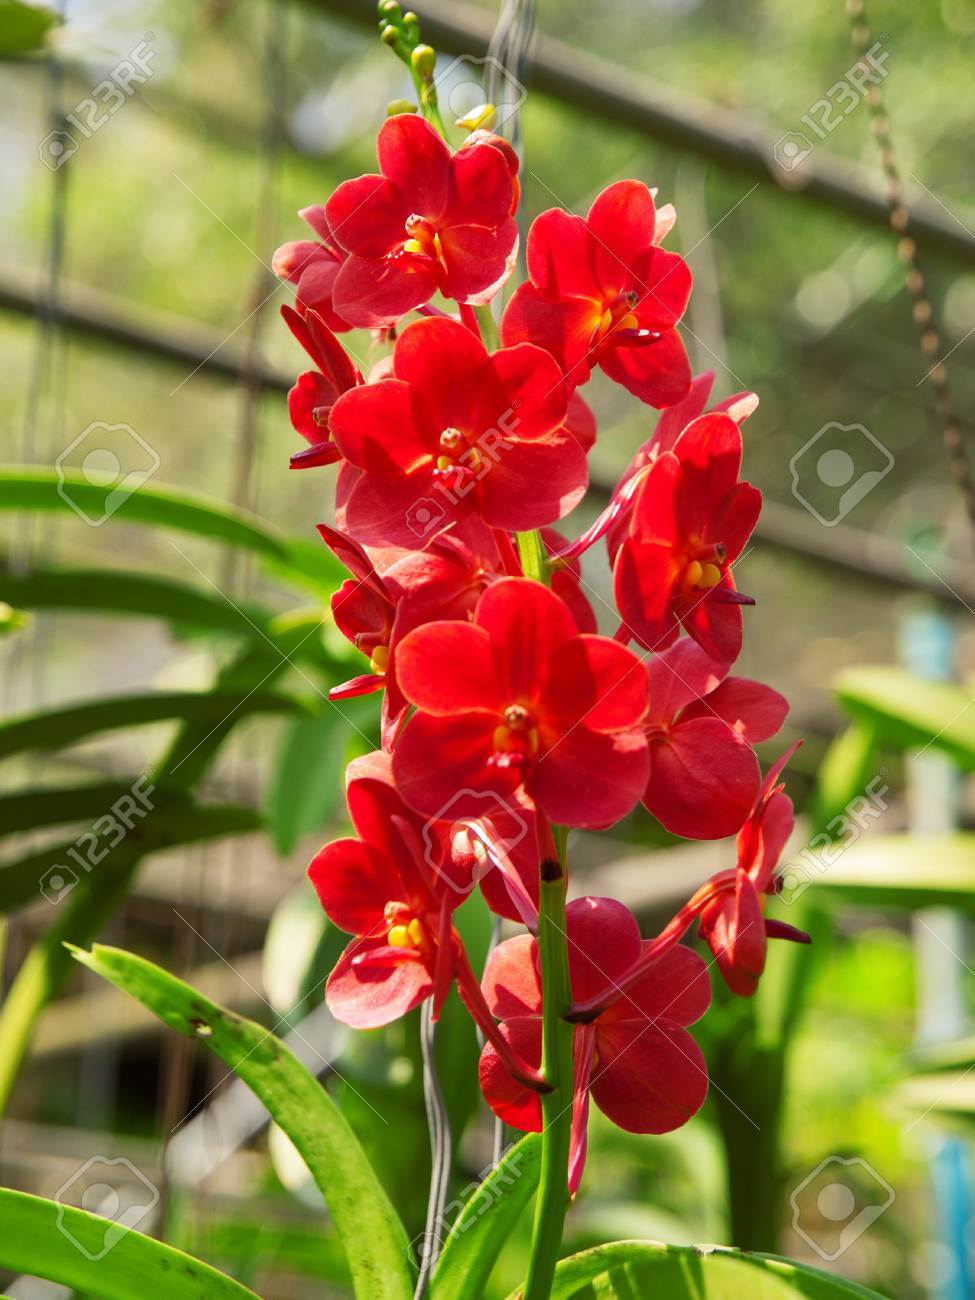 Red Vanda Orchid In Thailand Garden Green Garden On Background Stock Photo Picture And Royalty Free Image Image 62252712